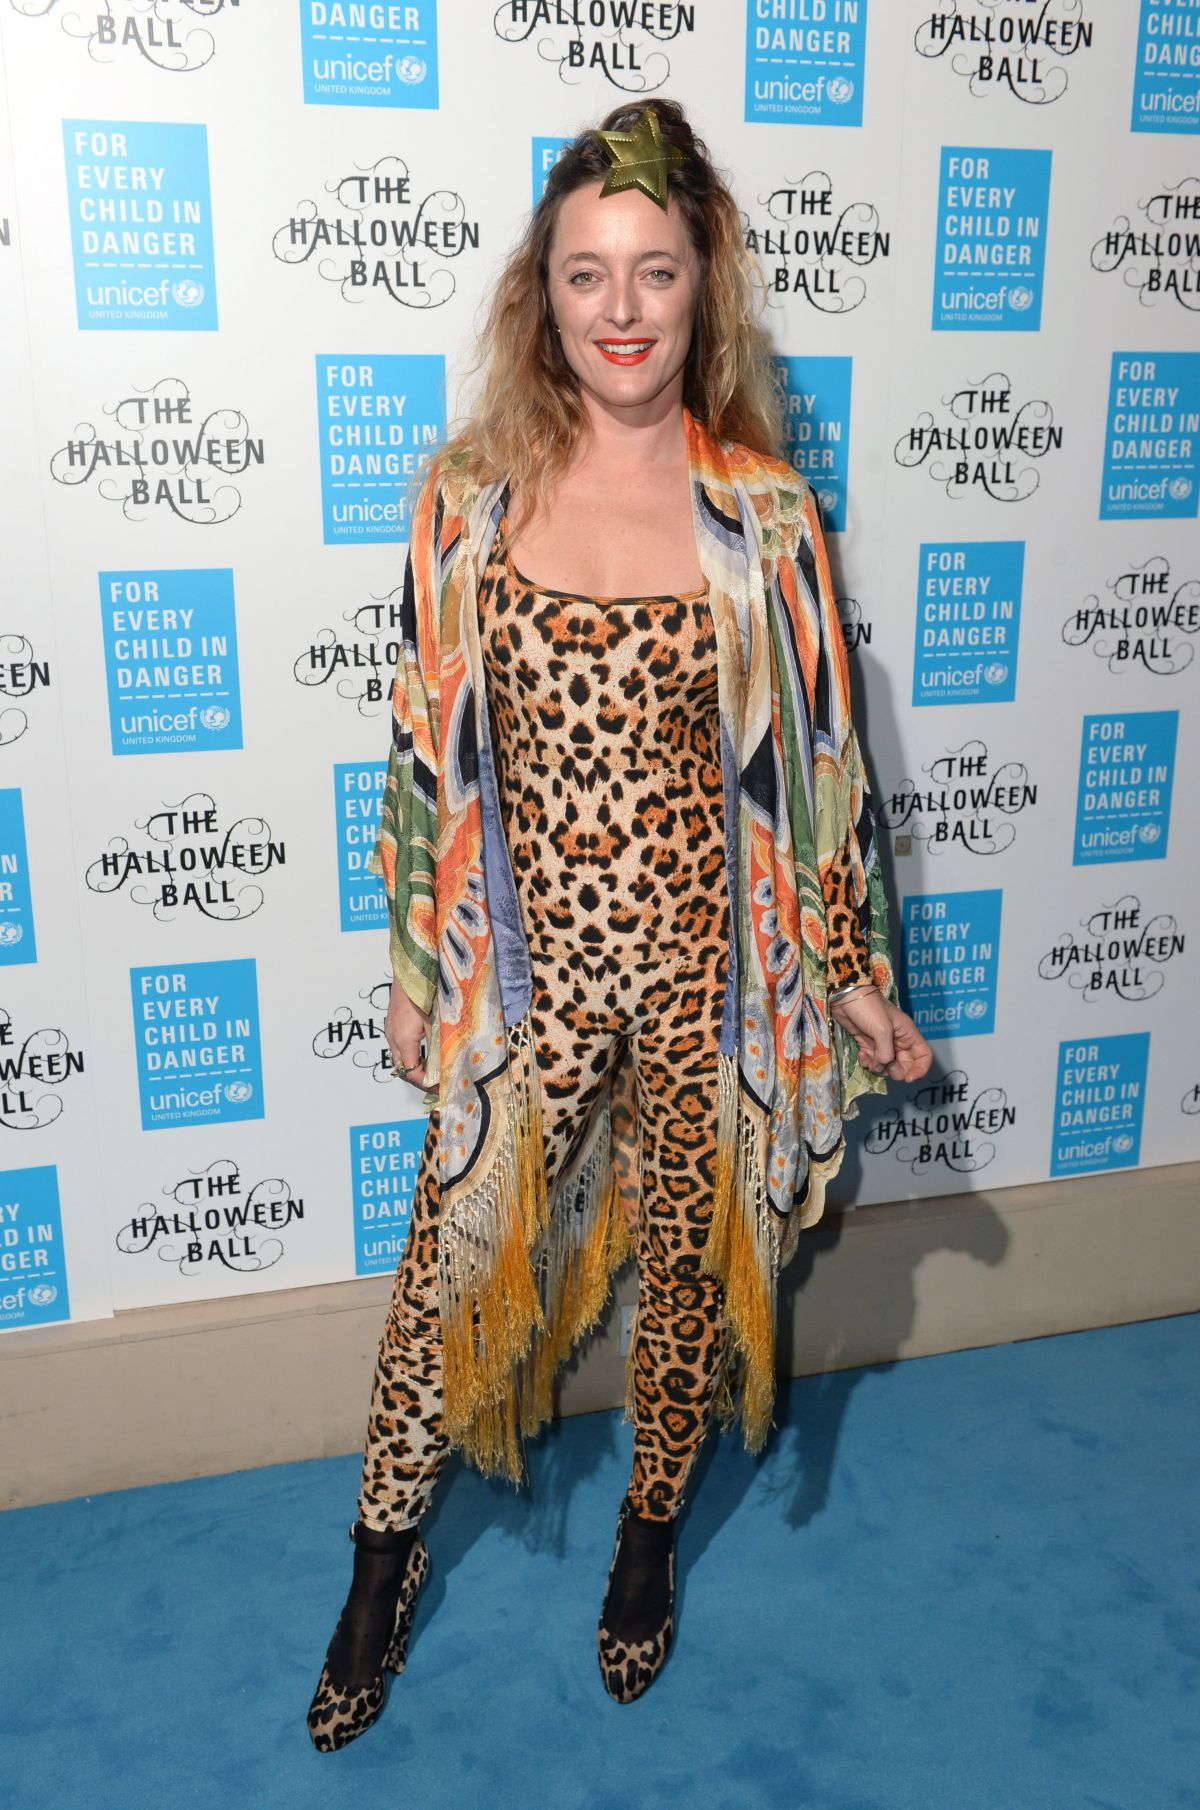 ALICE TEMPERLEY at 2015 Unicef Halloween Ball at One Mayfair in London 10/29/2015